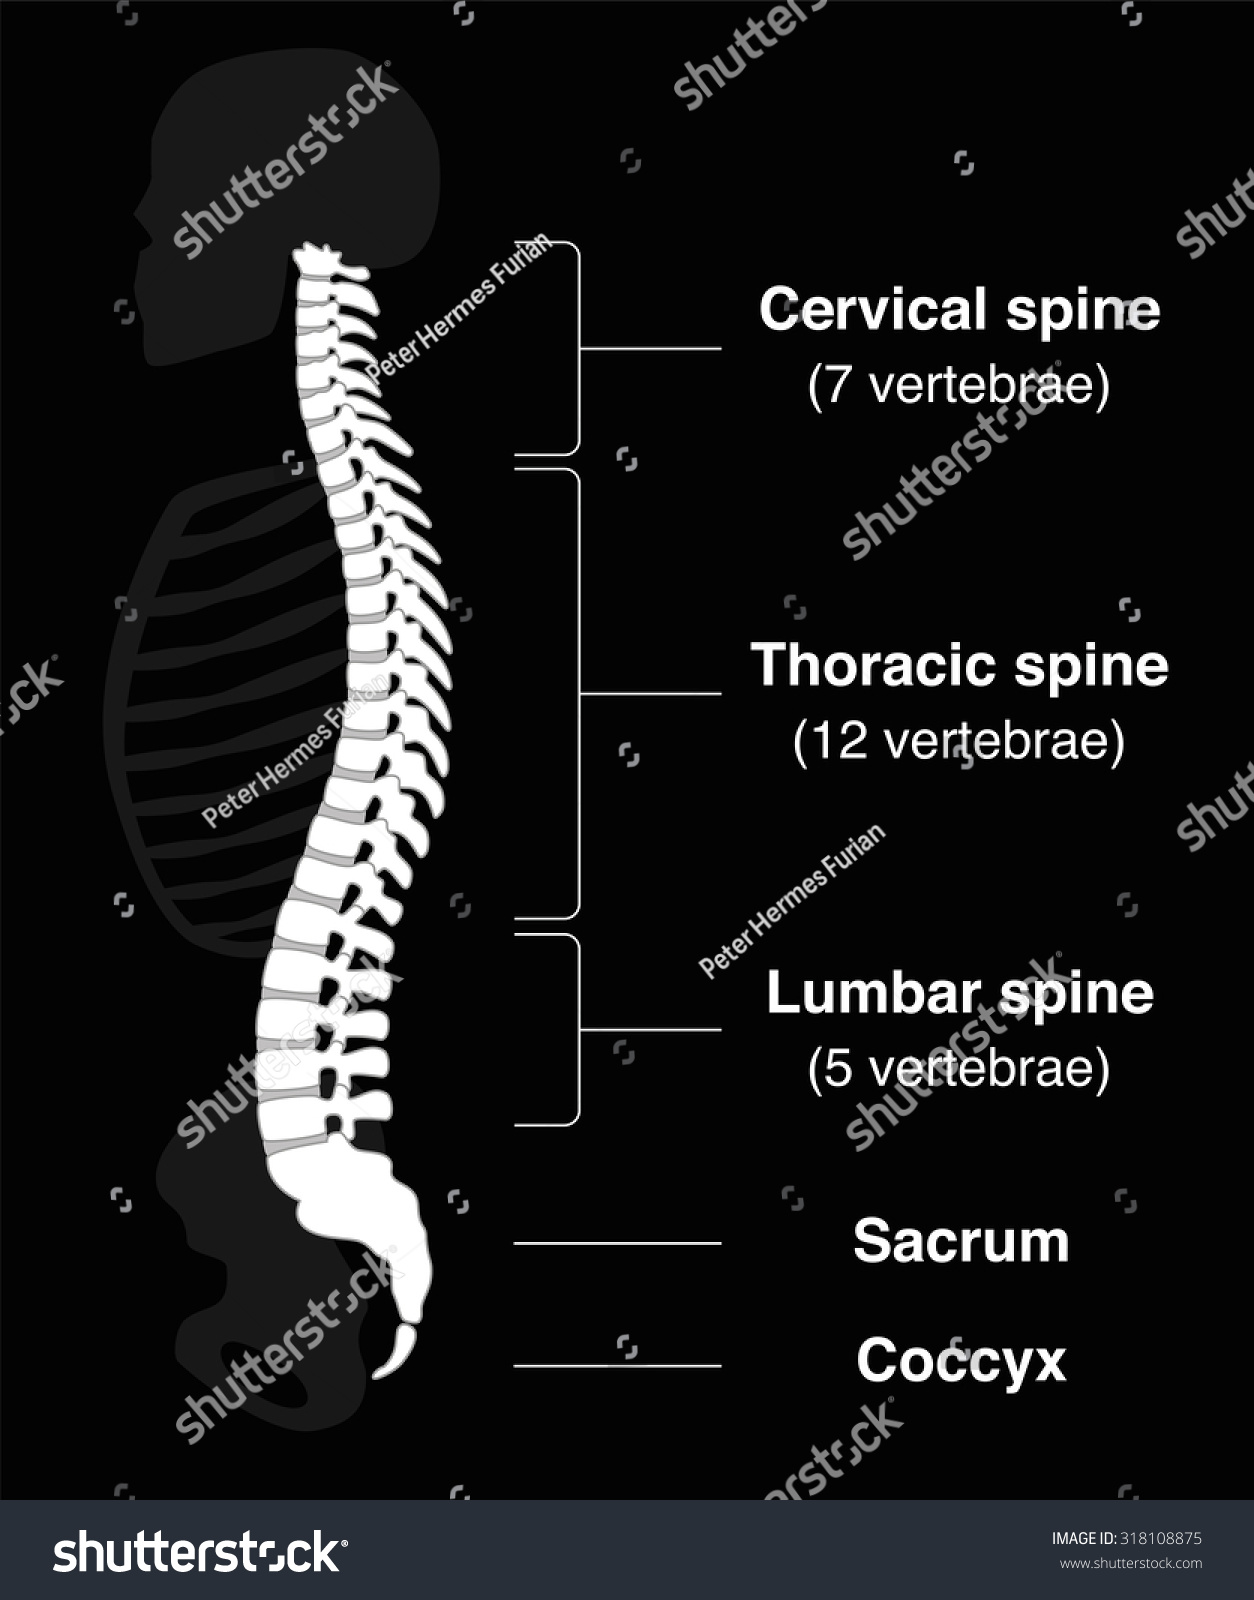 Human Backbone With Names Of The Spine Sections And ...